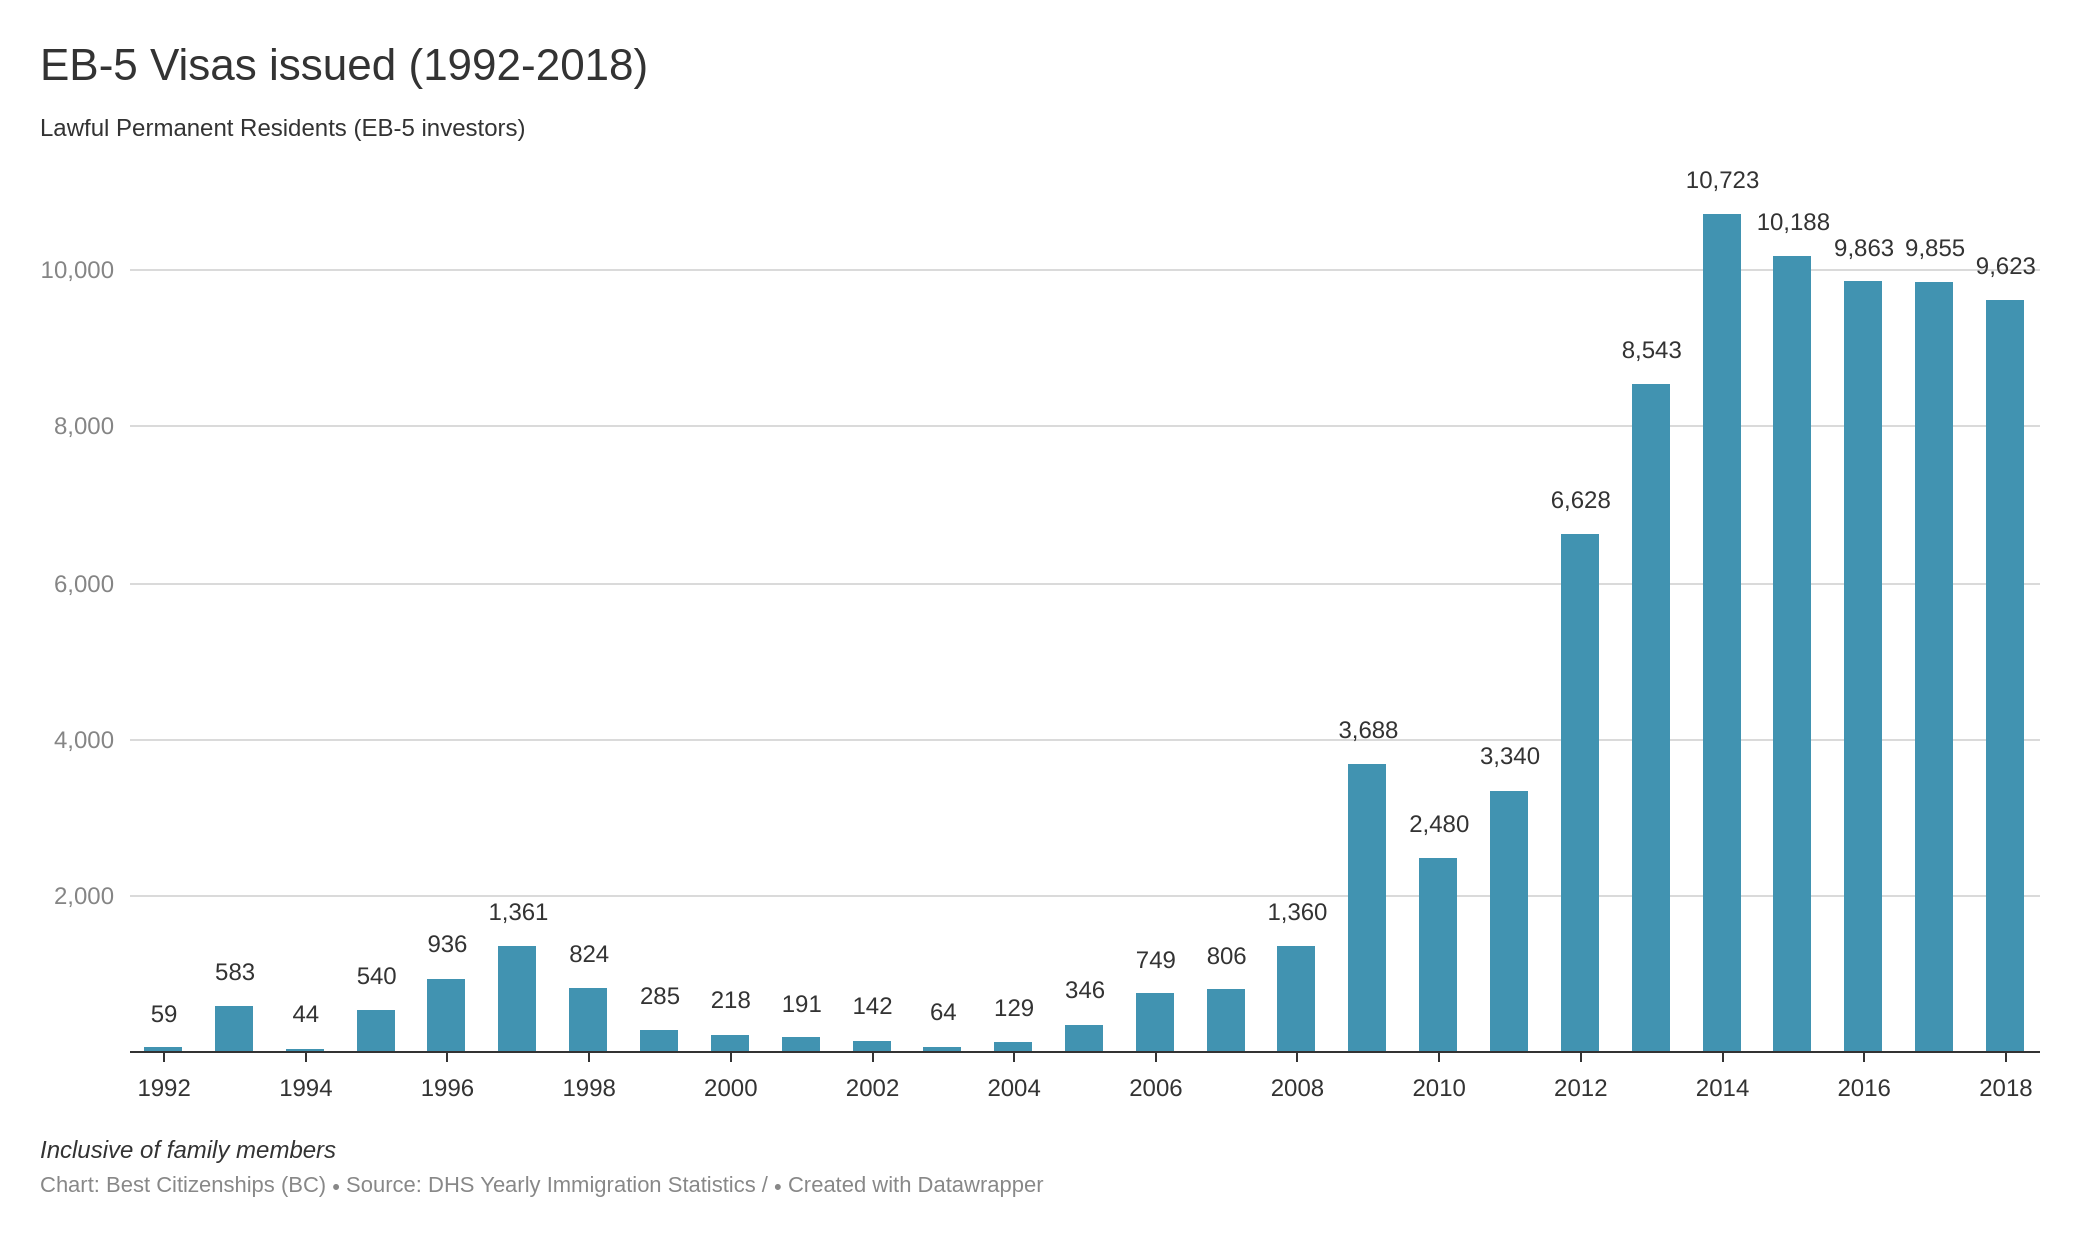 EB-5 visas issued 1992-2018